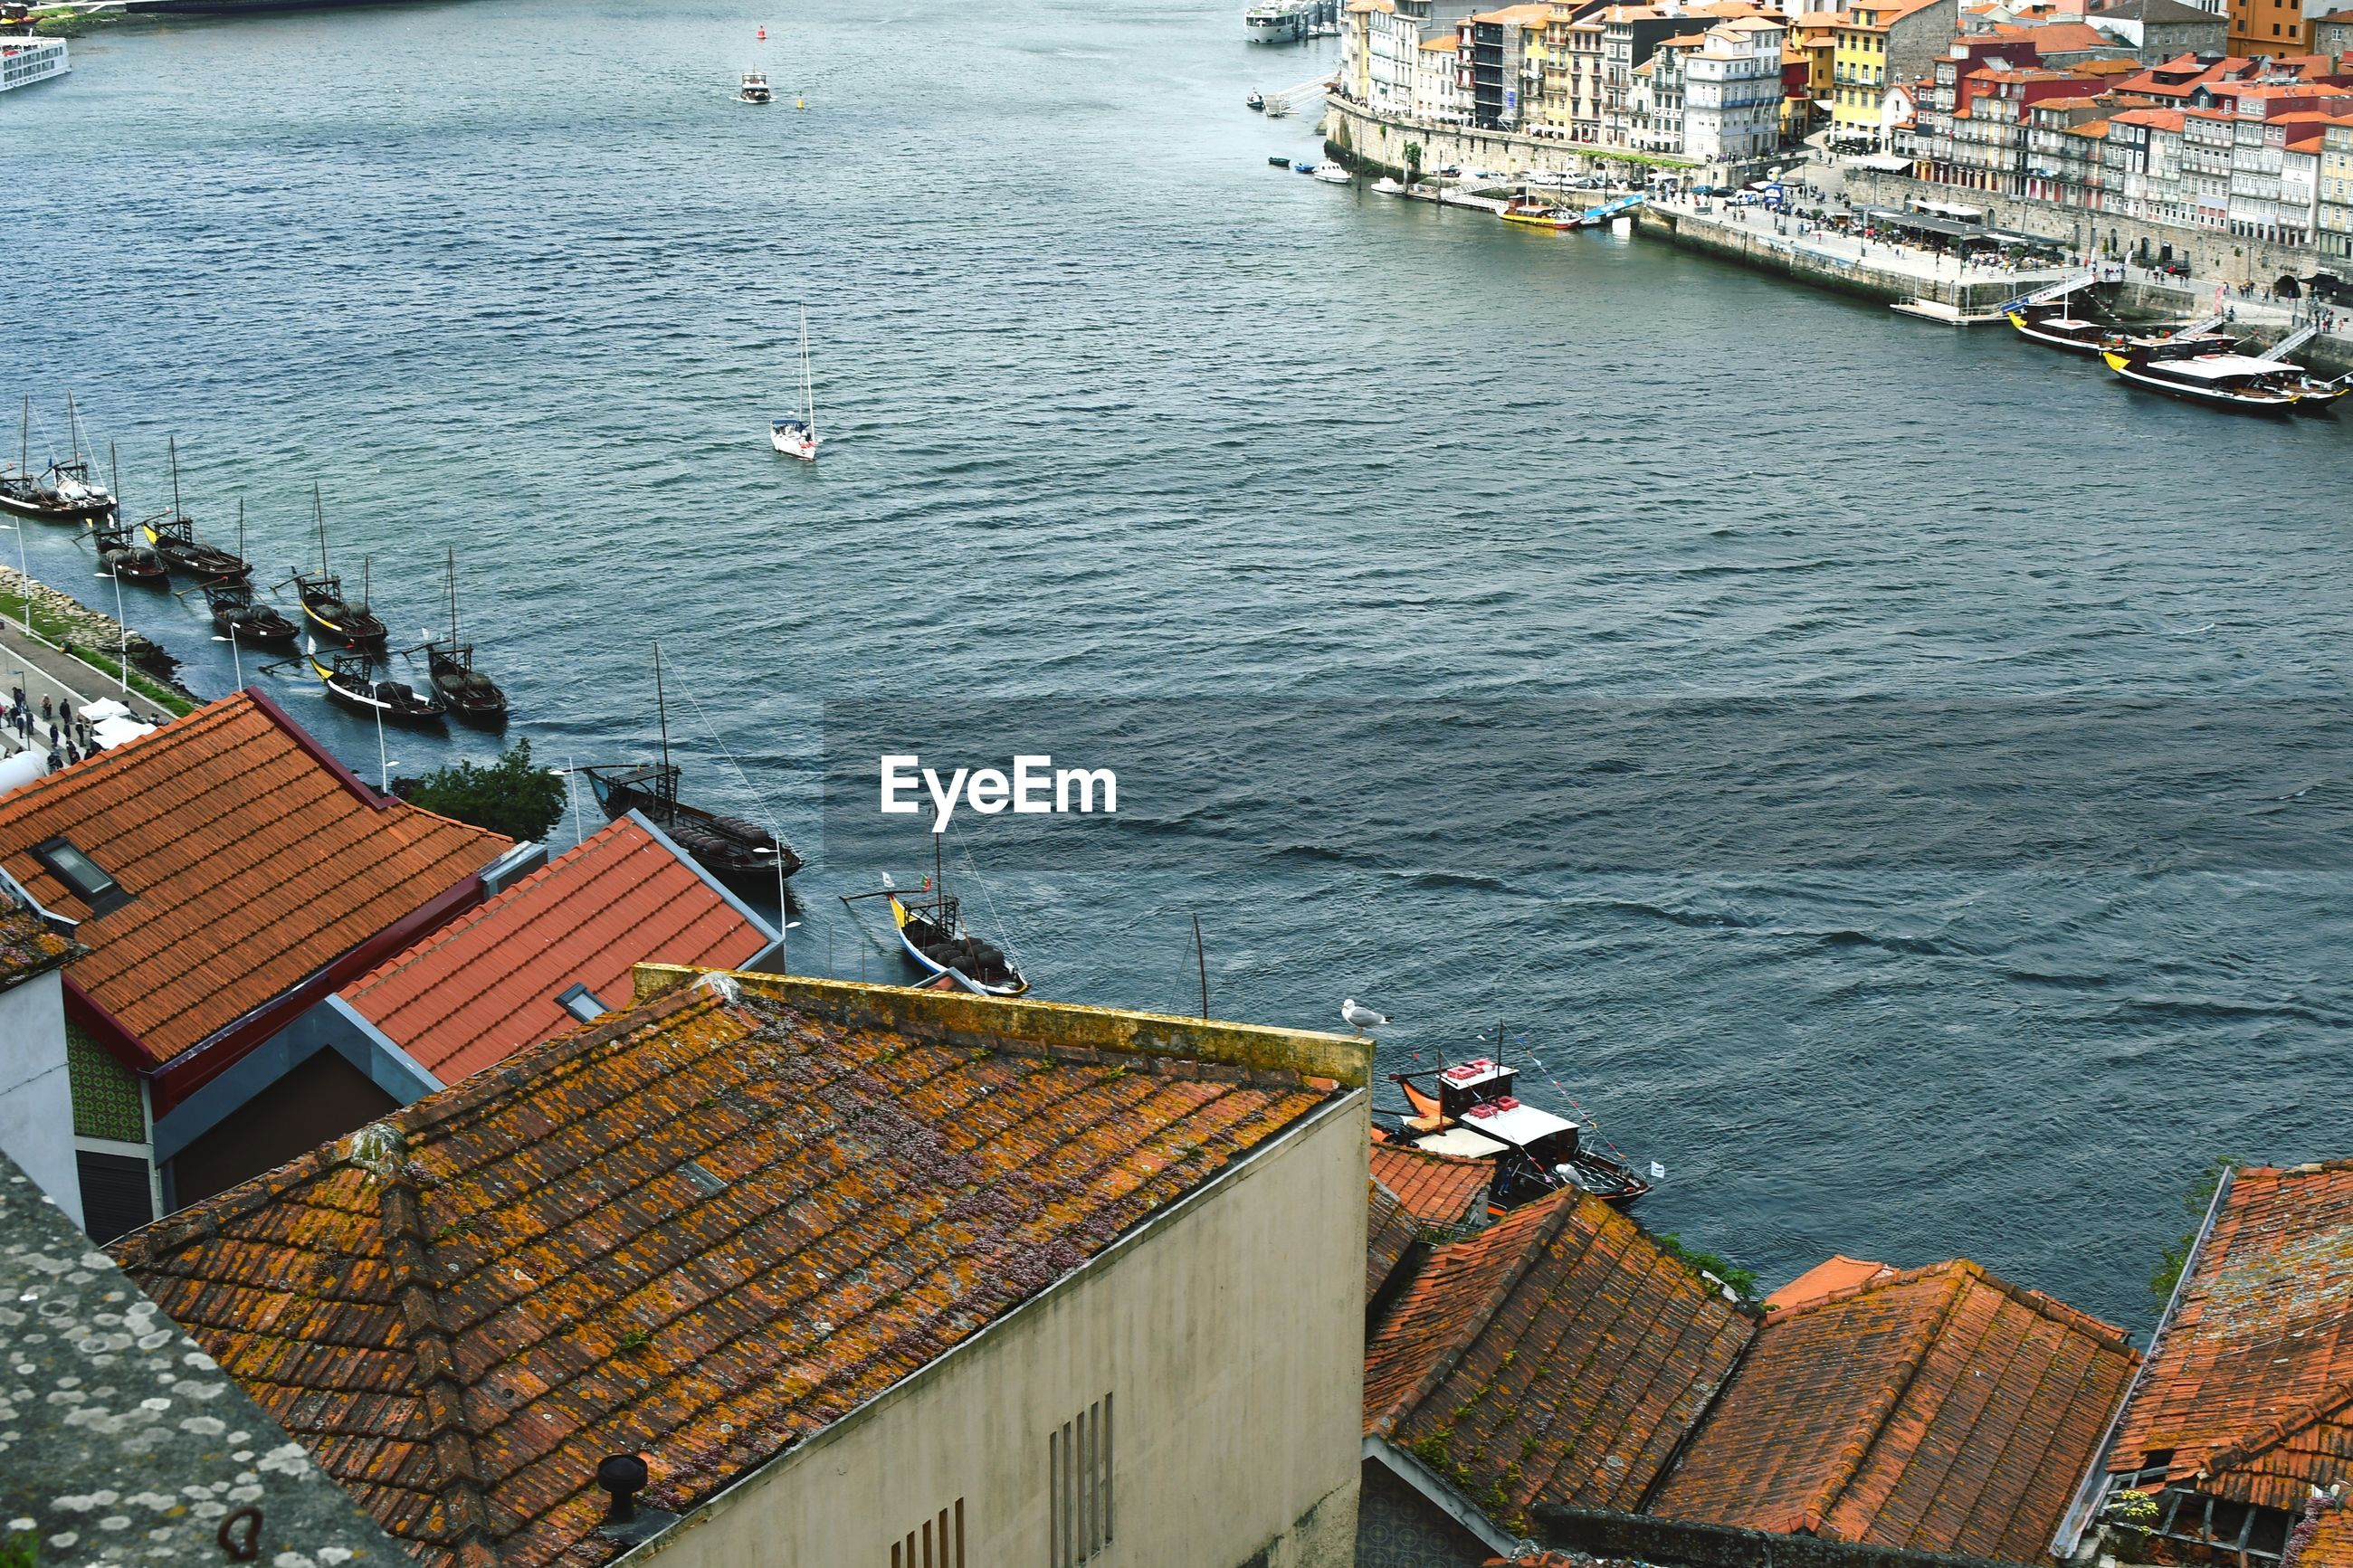 HIGH ANGLE VIEW OF TOWNSCAPE BY SEA AGAINST BUILDINGS